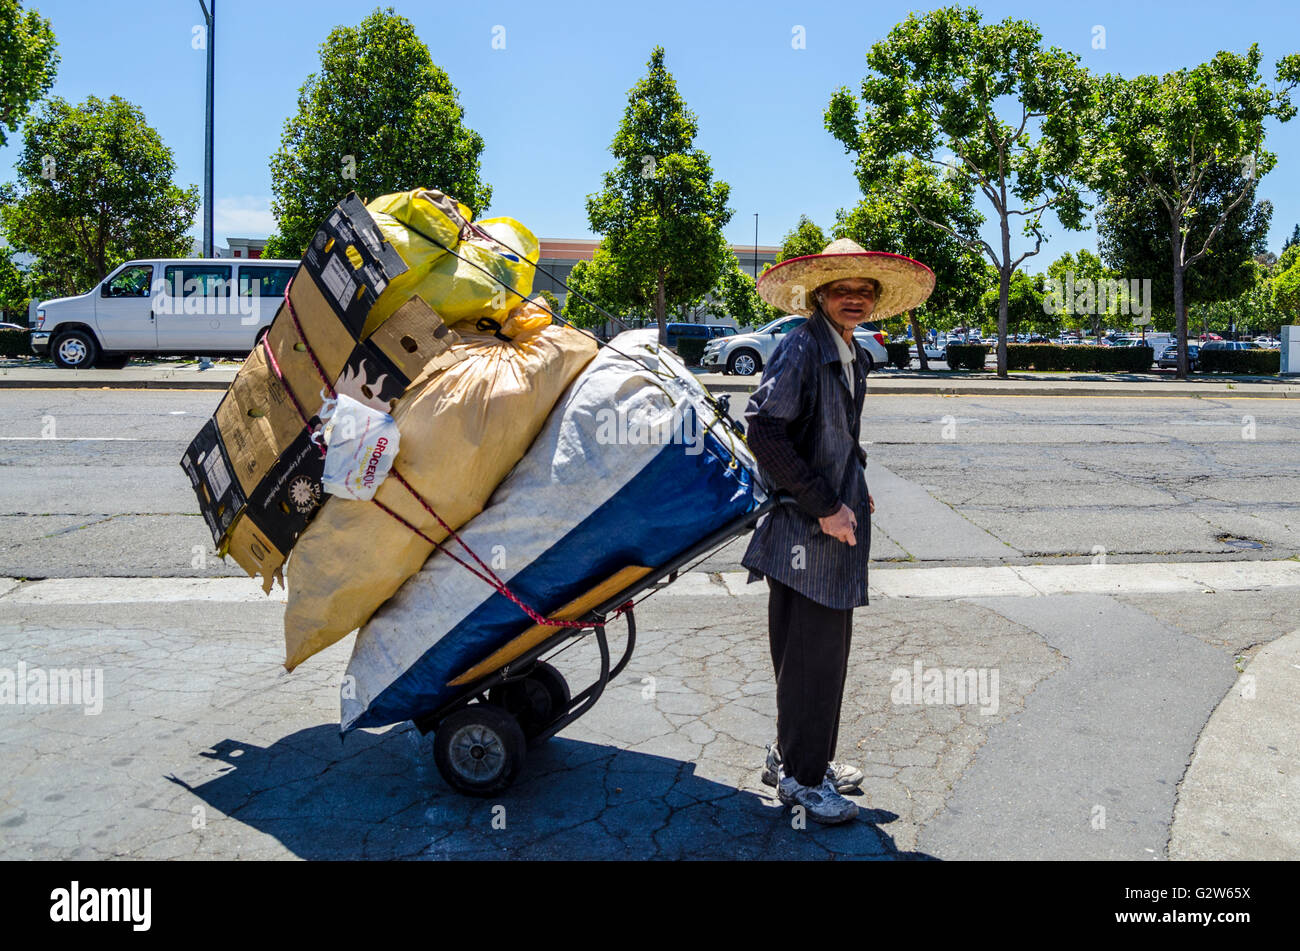 A hard working Asian man collecting recyclables in San Leandro California - Stock Image